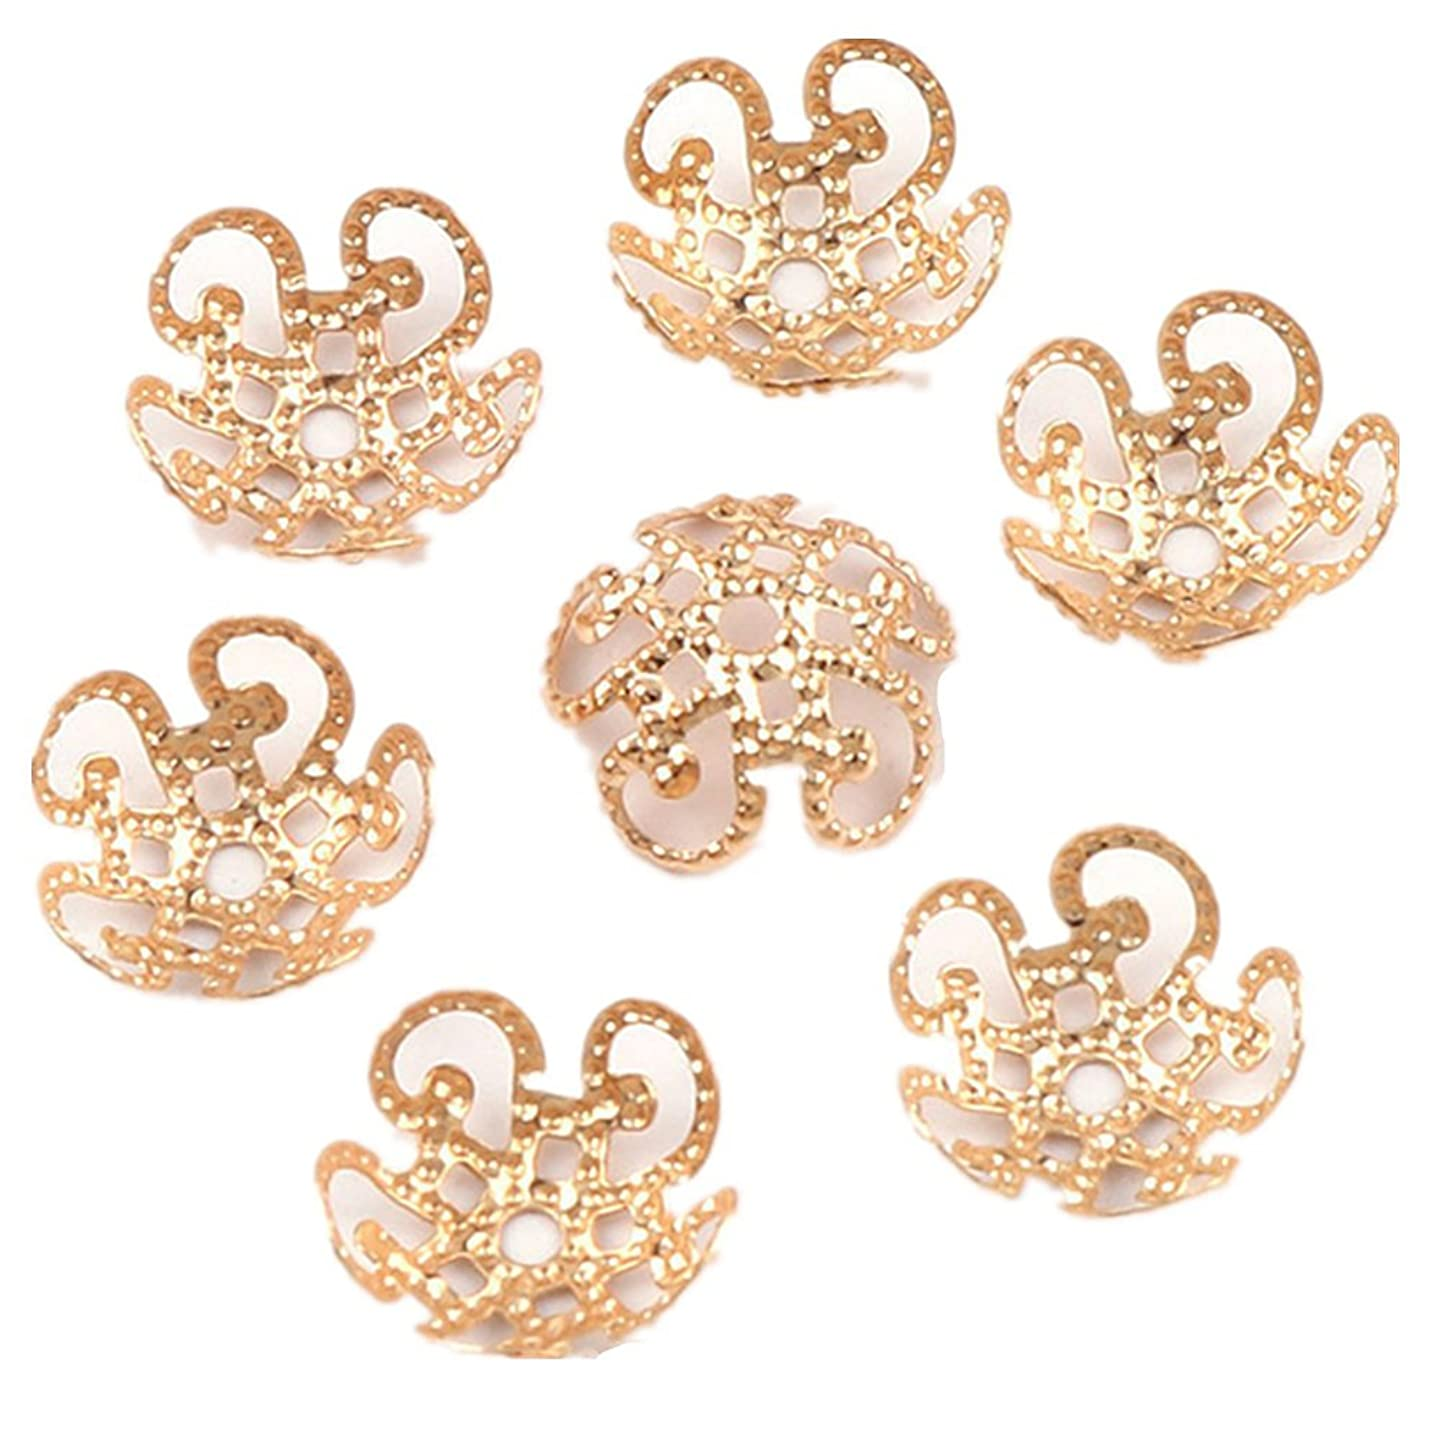 500PCS 11mm Gold Tone Flower Bead Caps Hollow Flower Bead Caps For Jewelry Making (rose gold)